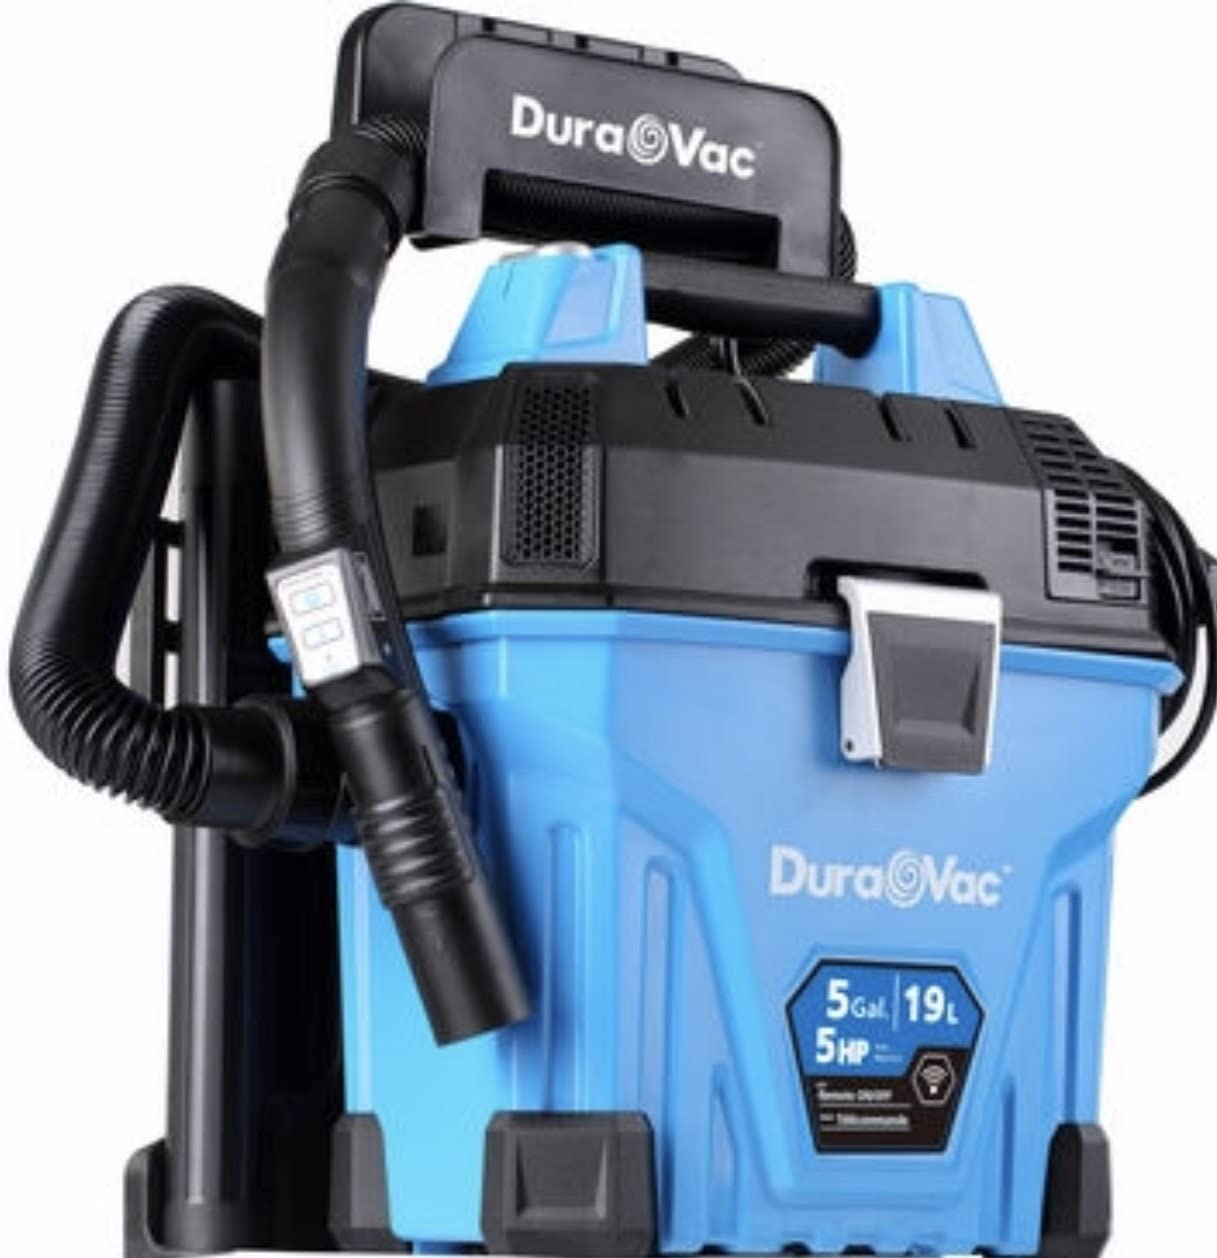 Vacmaster Wall Mountable Wet/Dry Garage Vac with Remote Control, 5 Gallon, 5 HP (VWMB5080101), Blue